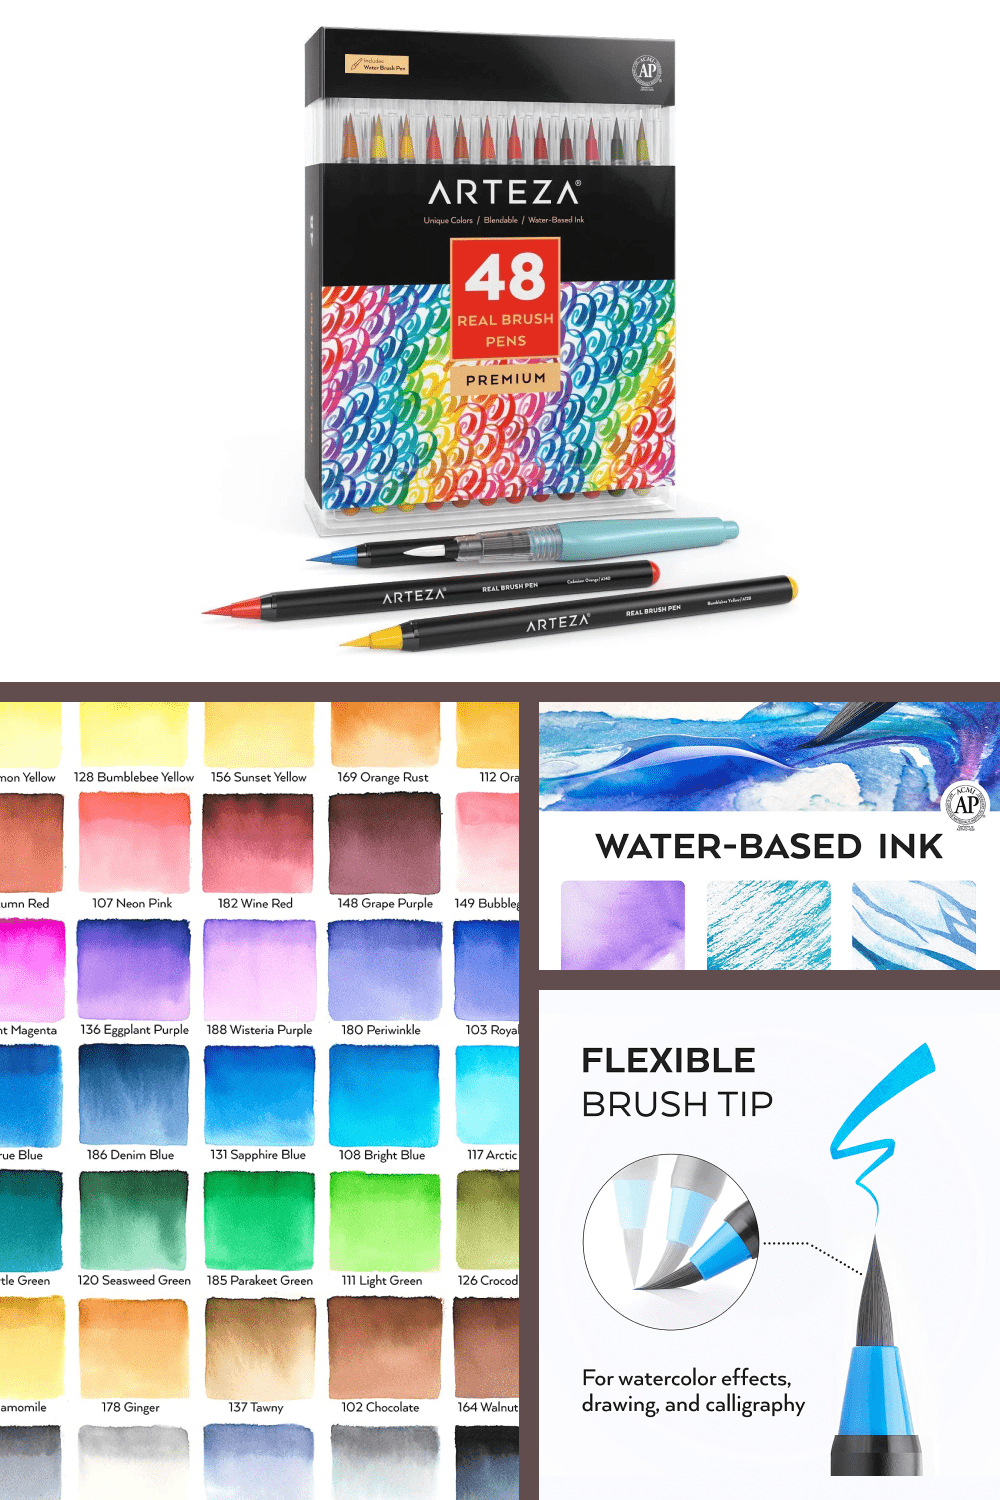 These premium paint pens offer richer colors & finer, more flexible tips than you'd get with costlier brands.